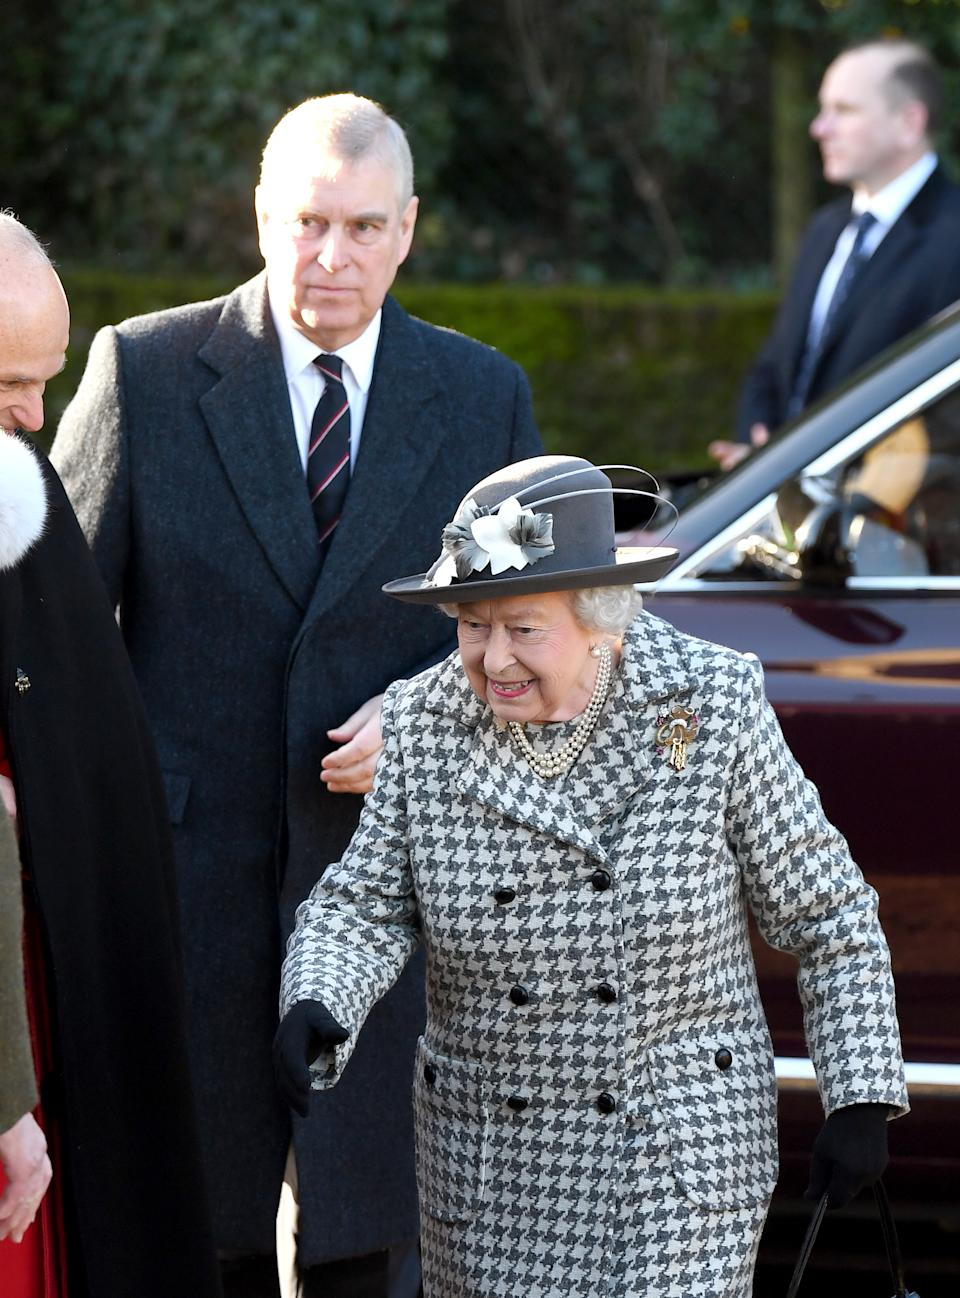 KING'S LYNN, ENGLAND - JANUARY 19: Queen Elizabeth II and Prince Andrew, Duke of York attend church at St Mary the Virgin church at Hillington in Sandringham on January 19, 2020 in King's Lynn, England. (Photo by Karwai Tang/WireImage)